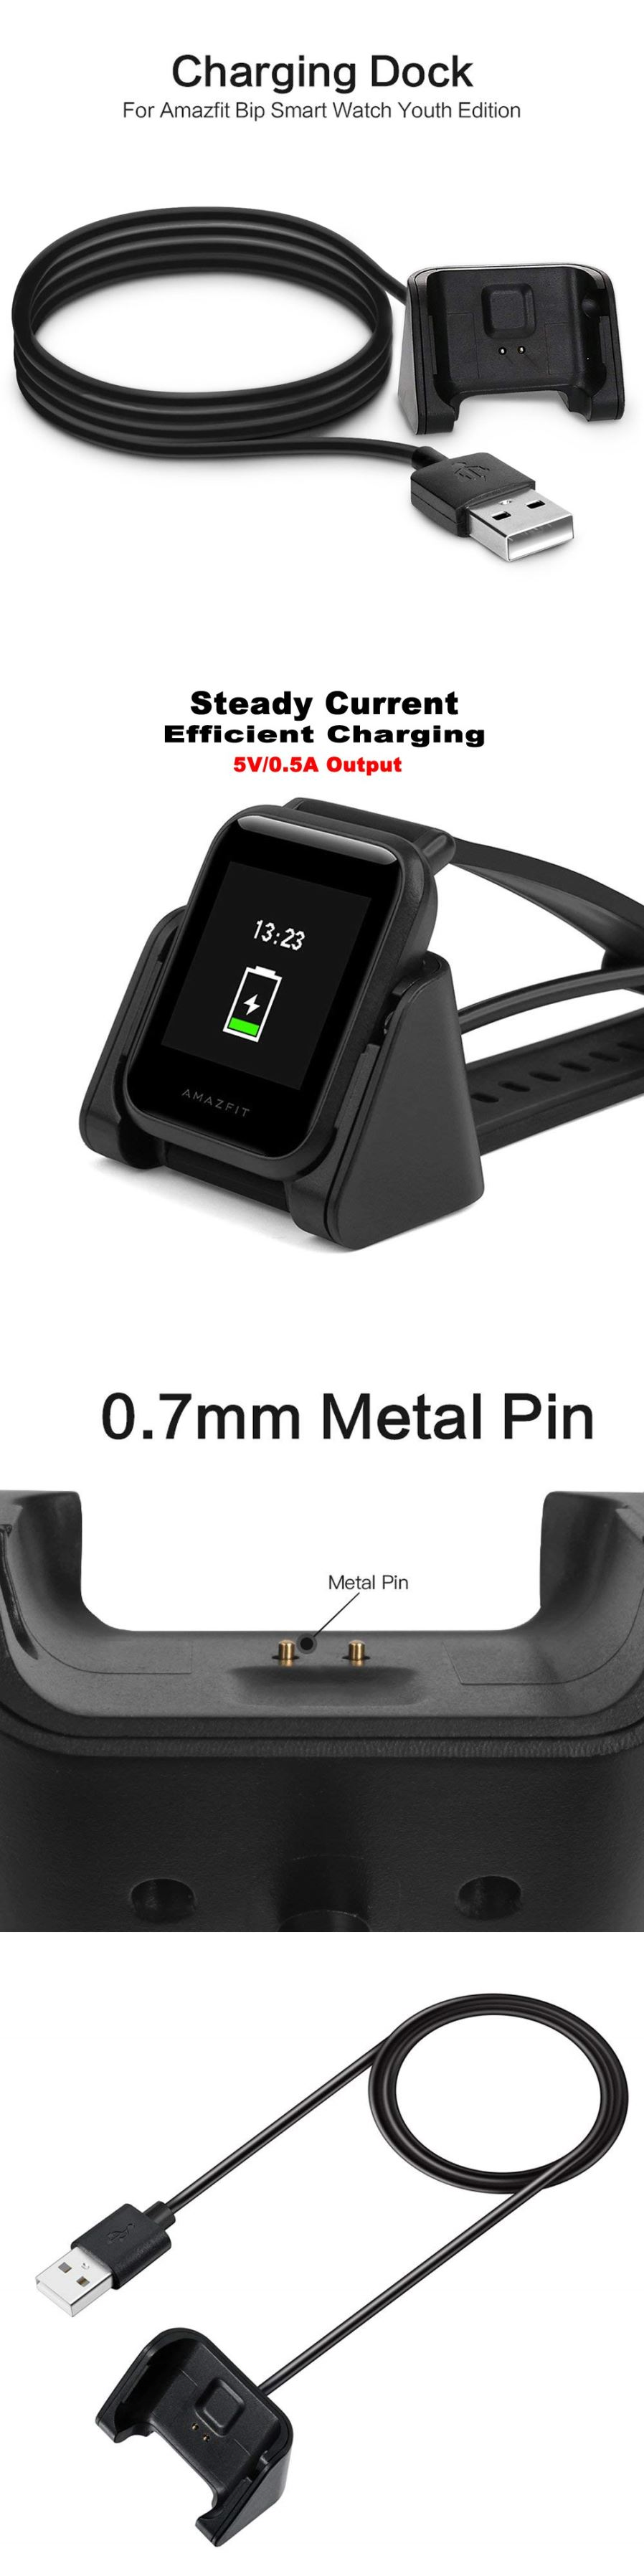 Fitness Trackers Usb Fast Charger Charging Dock For Huami Amazfit Xiaomi Replacement Bip Watch Compact And Portable Designgreat Travelers Business Users Power Protection Circuit Included